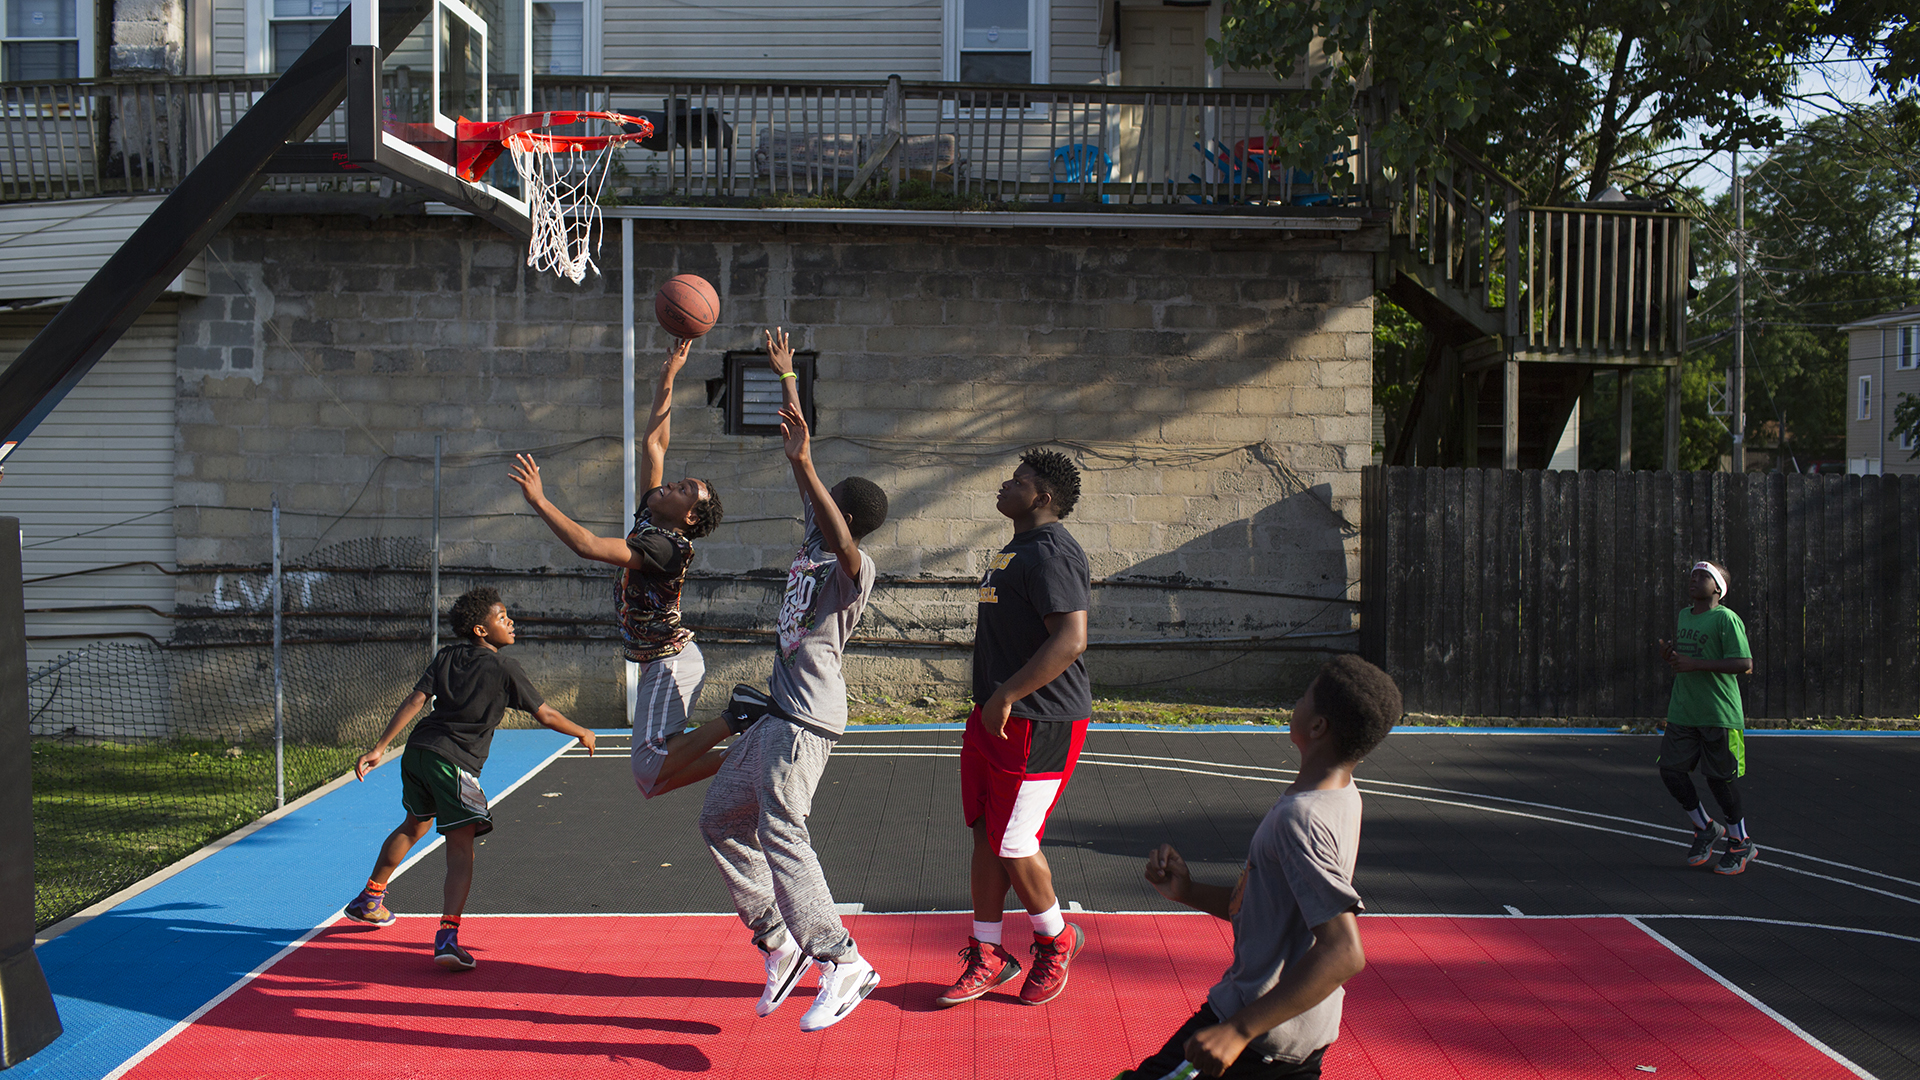 She built a basketball court to offer kids an alternative for Built in basketball court